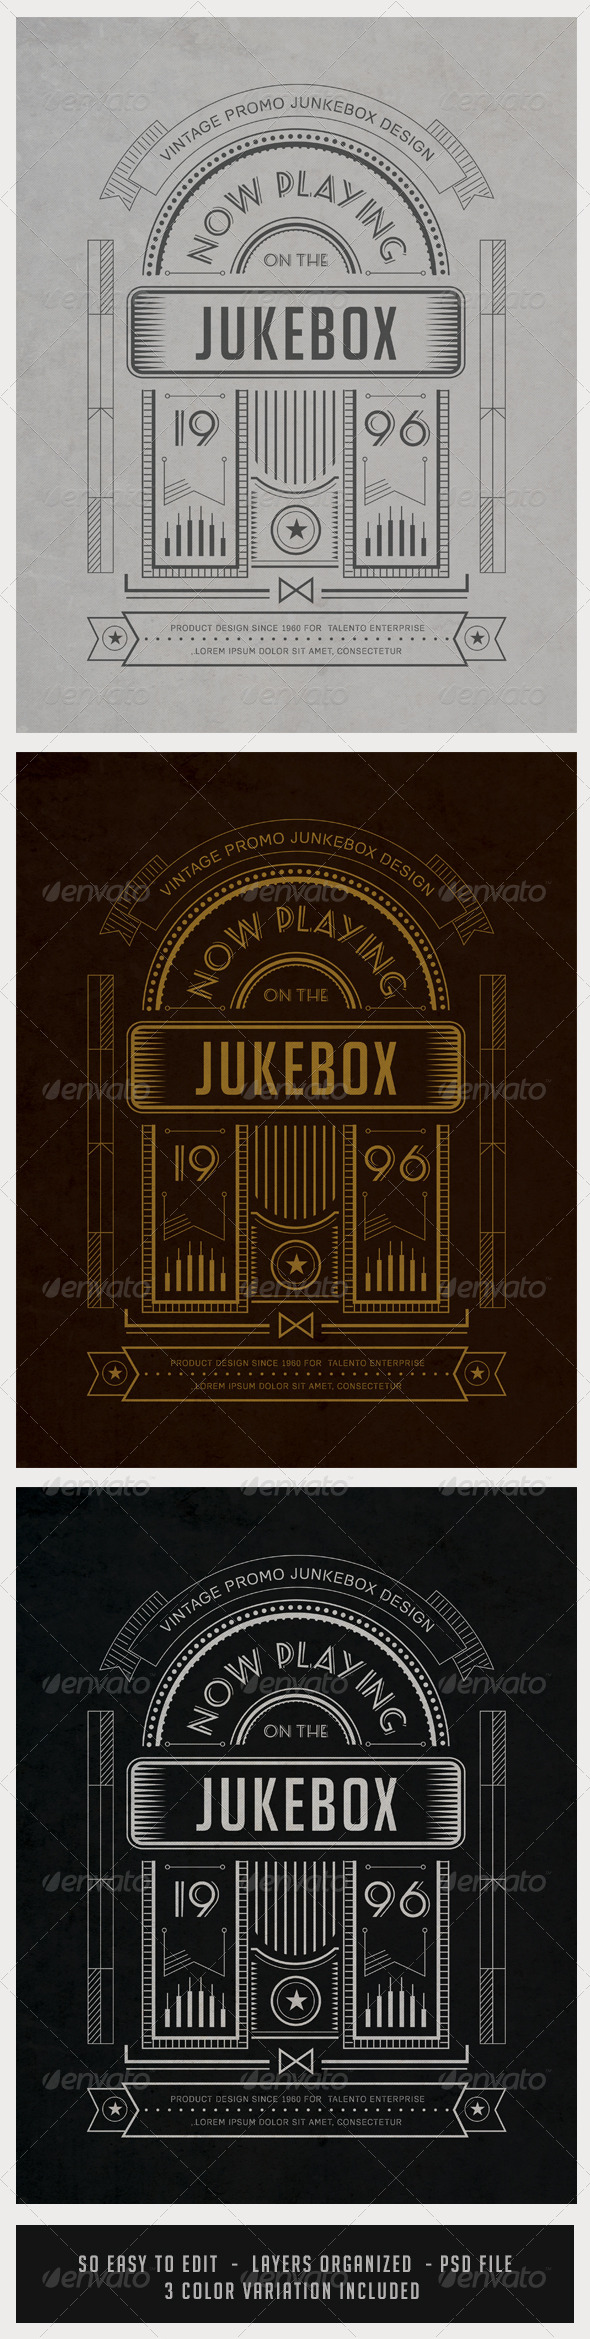 Vintage Junkebox Poster with Shape Layers